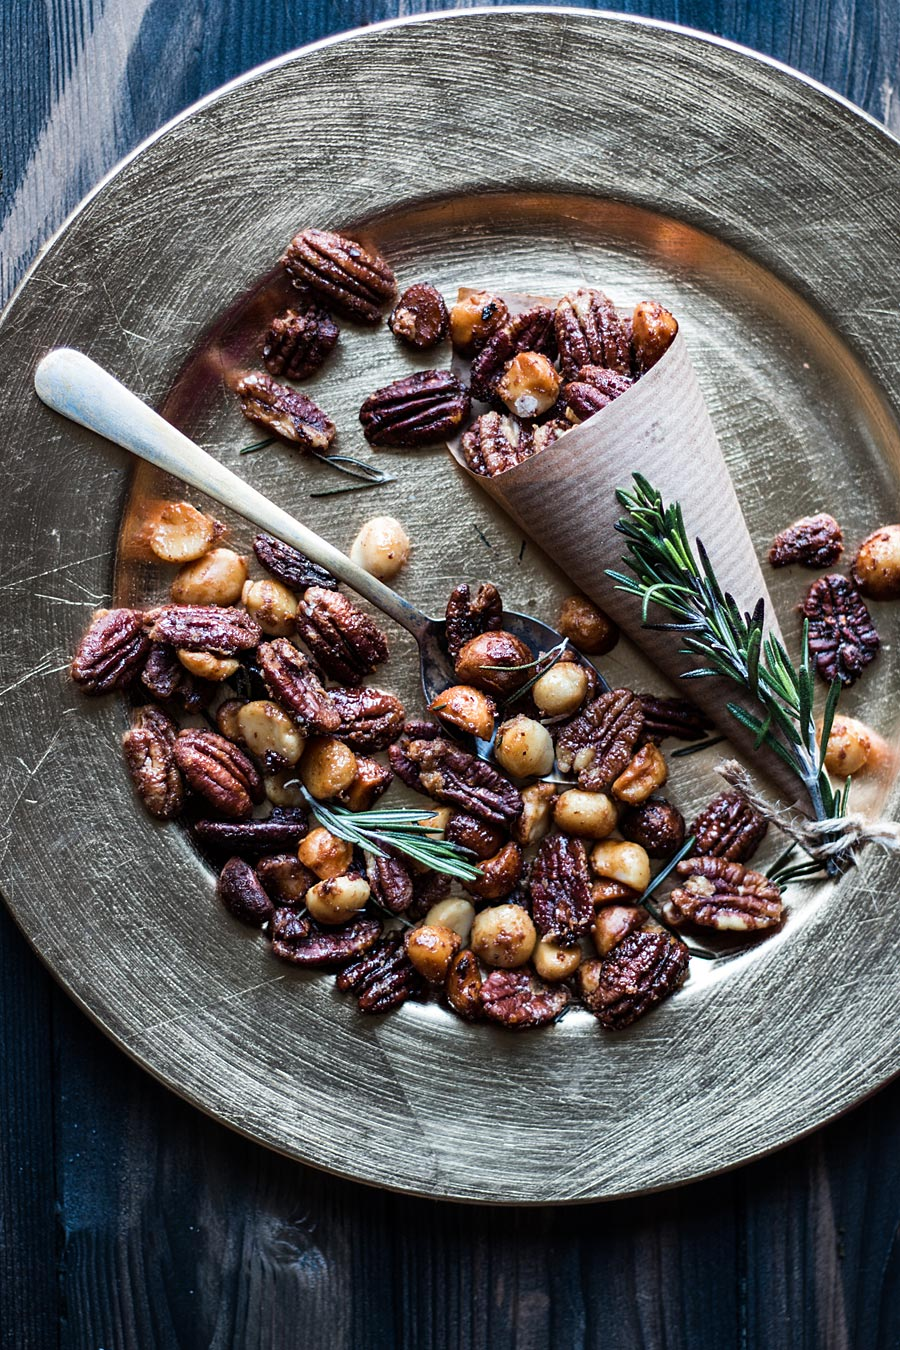 Nuts for the Sacral chakra by Laura Domingo | Omm foods